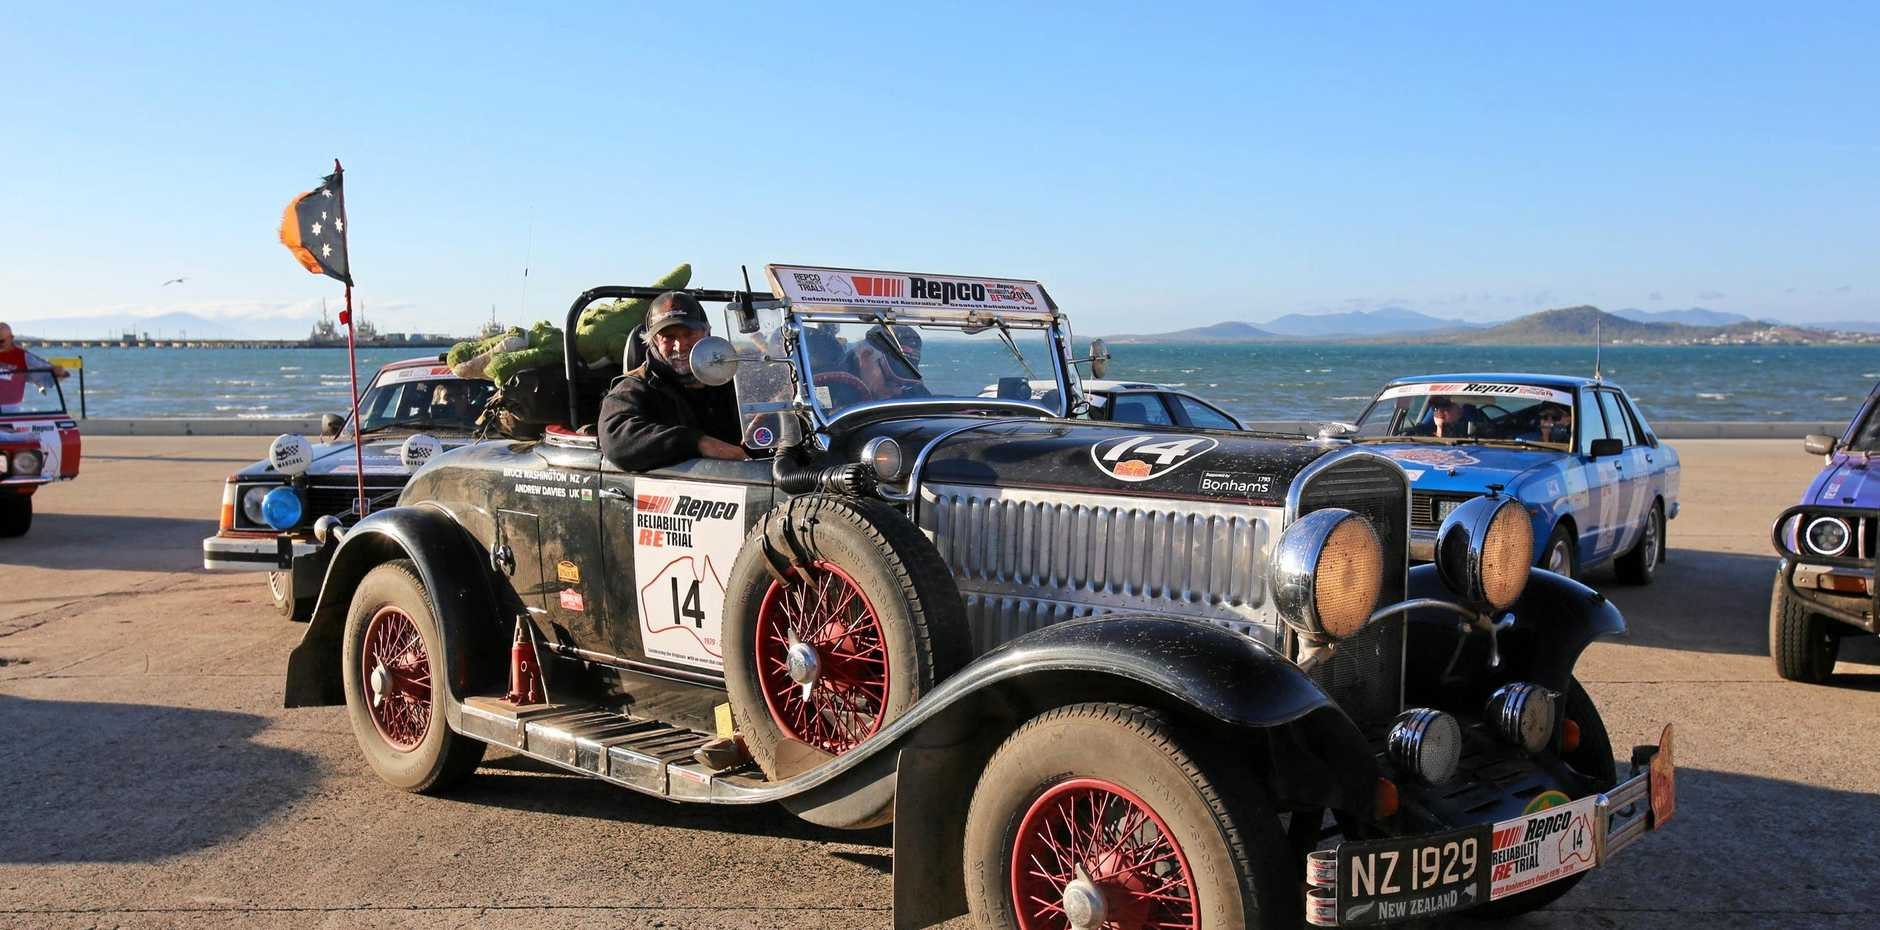 The oldest car on the race, a 1929 Chrysler 75 Roadster, draws attention where ever it goes.